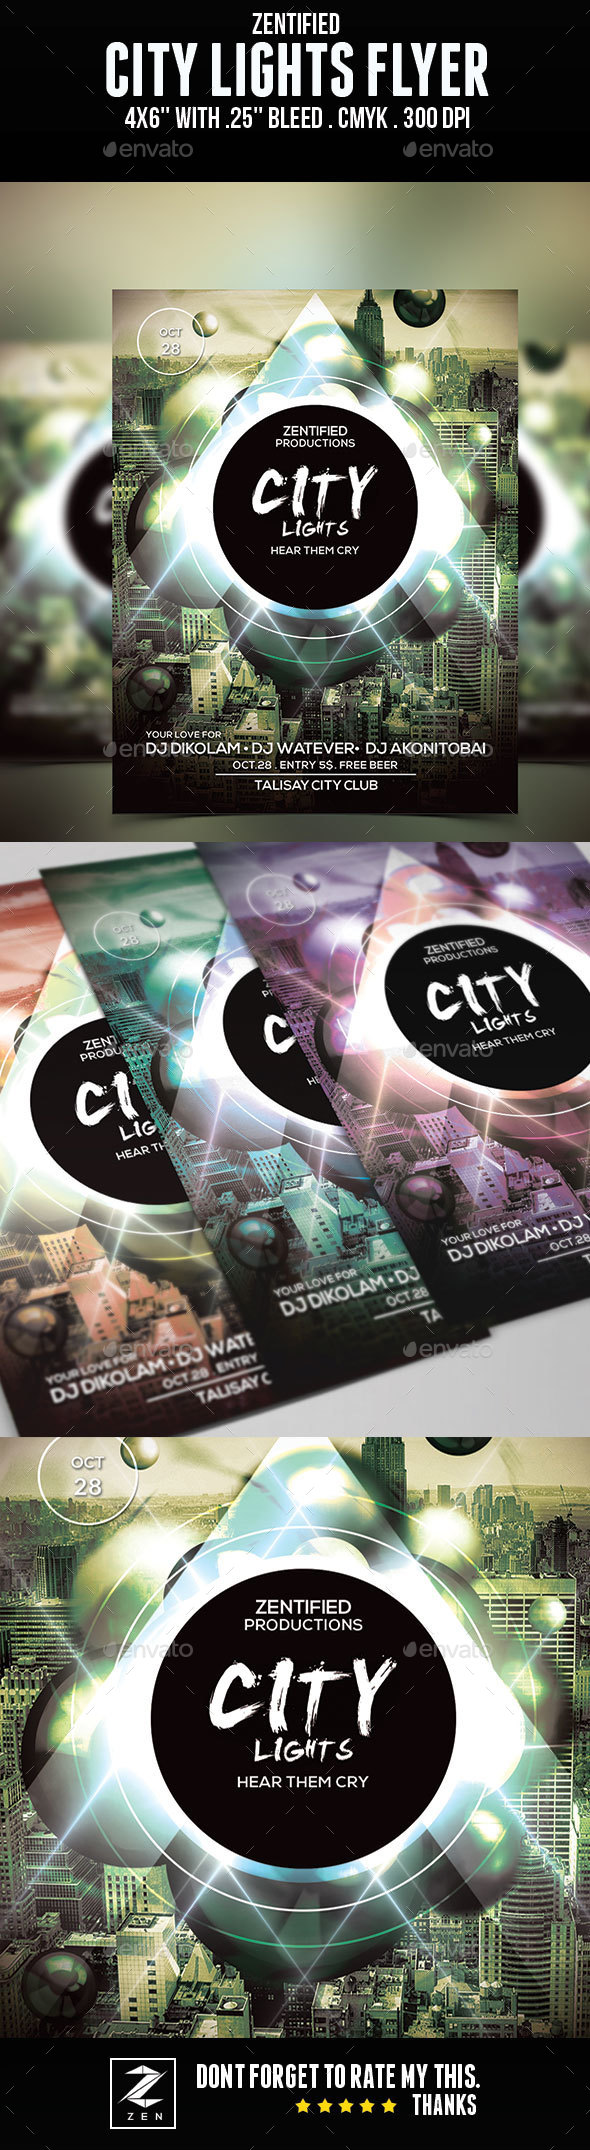 City Lights Flyer - Clubs & Parties Events